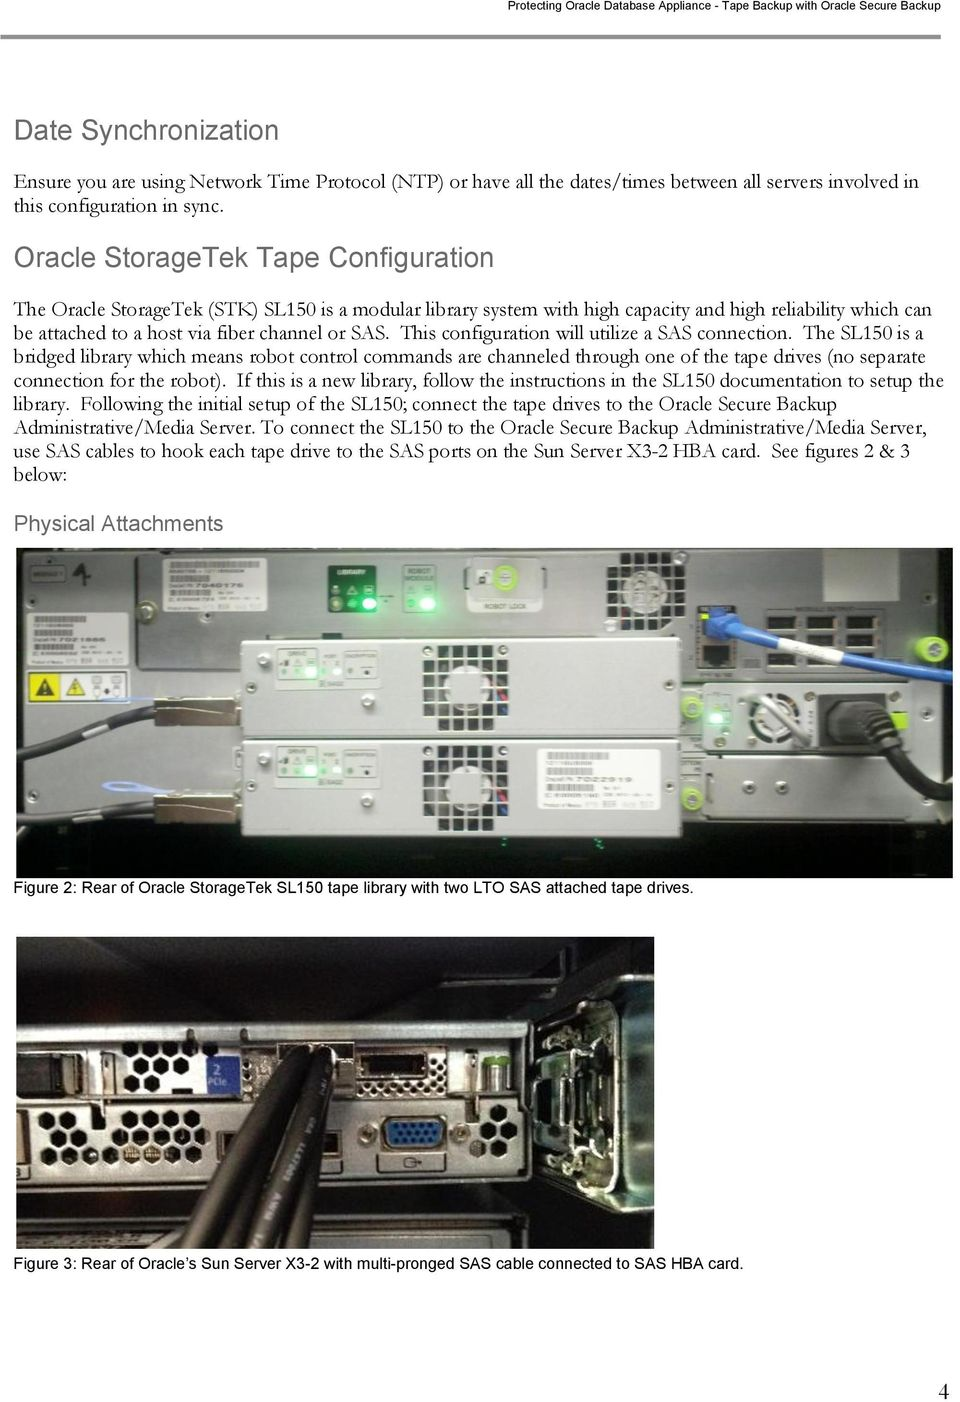 This configuration will utilize a SAS connection. The SL150 is a bridged library which means robot control commands are channeled through one of the tape drives (no separate connection for the robot).